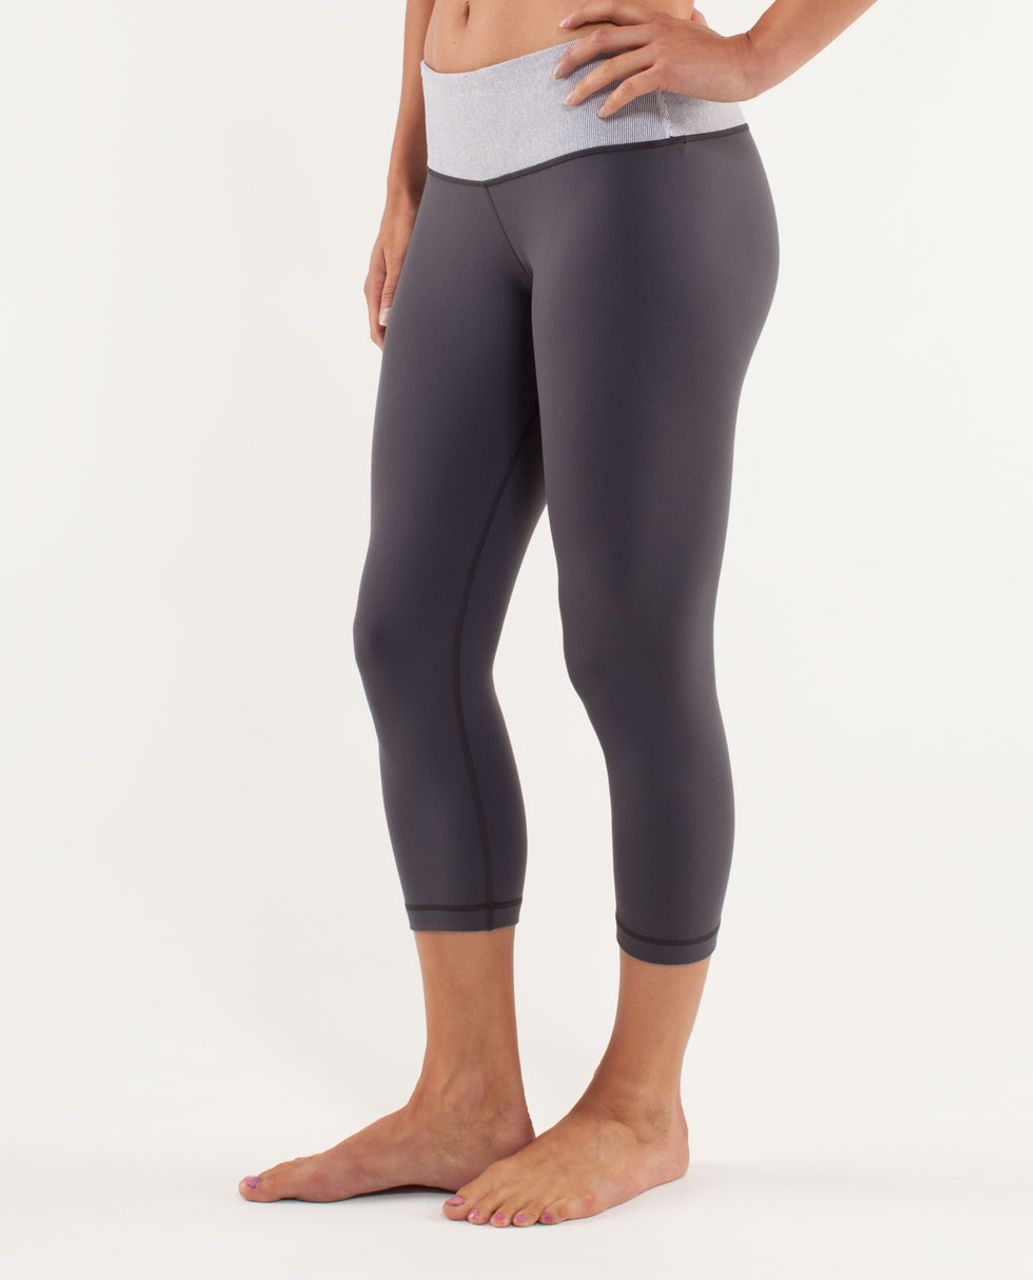 Lululemon Wunder Under Crop *Reversible - Coal / Wee Stripe White / Static Coal